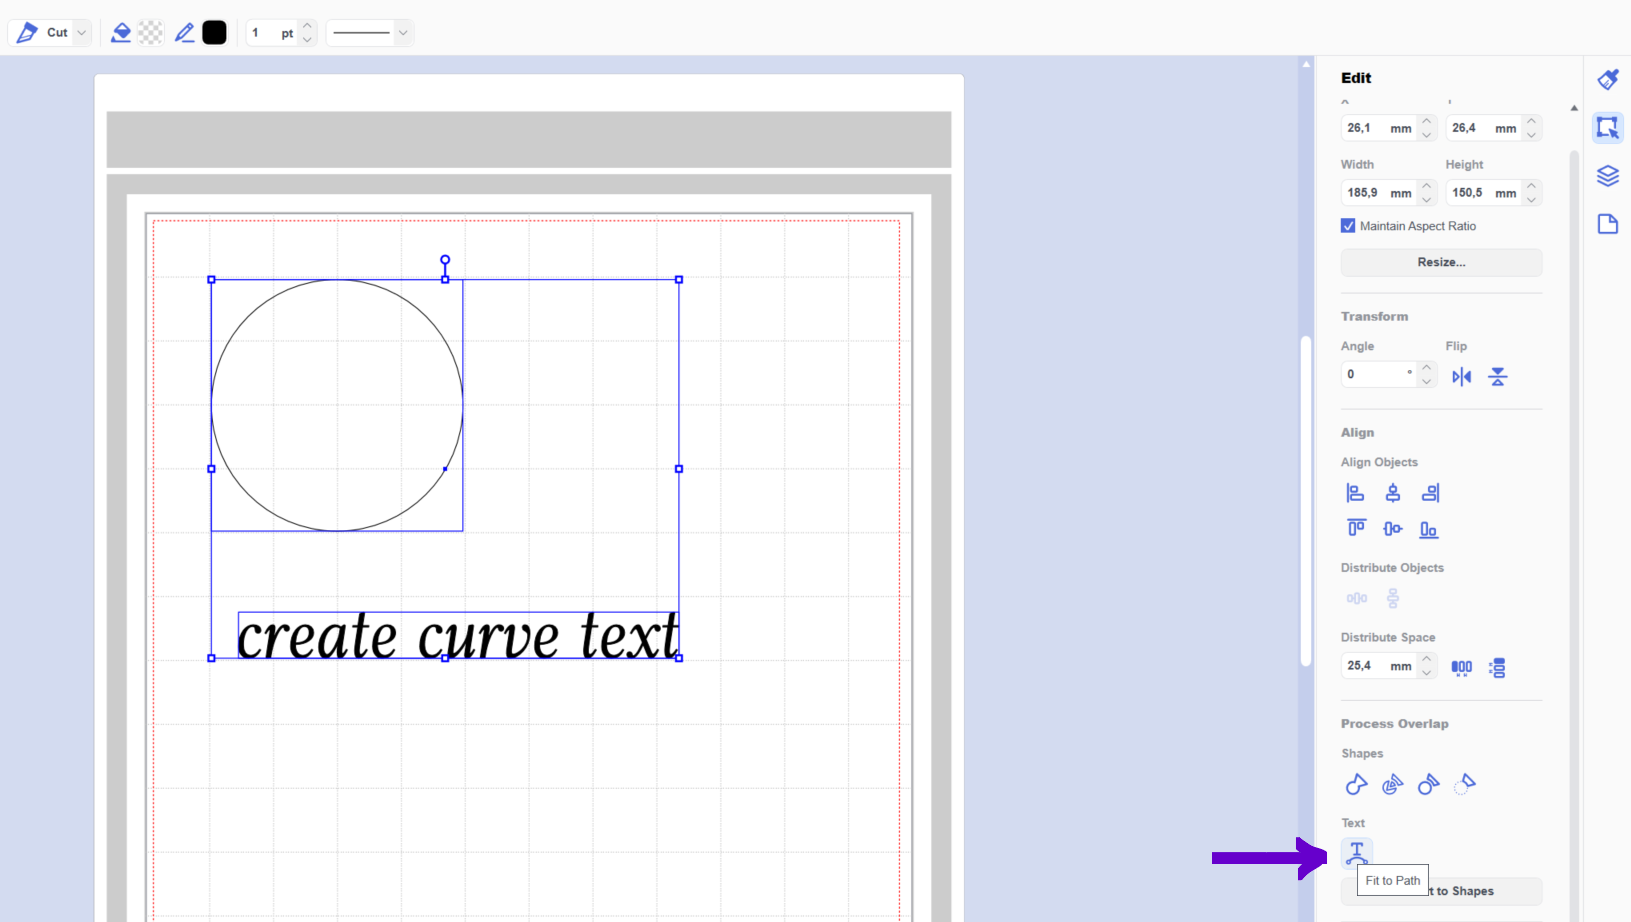 How to create curve text in Canvas Workspace